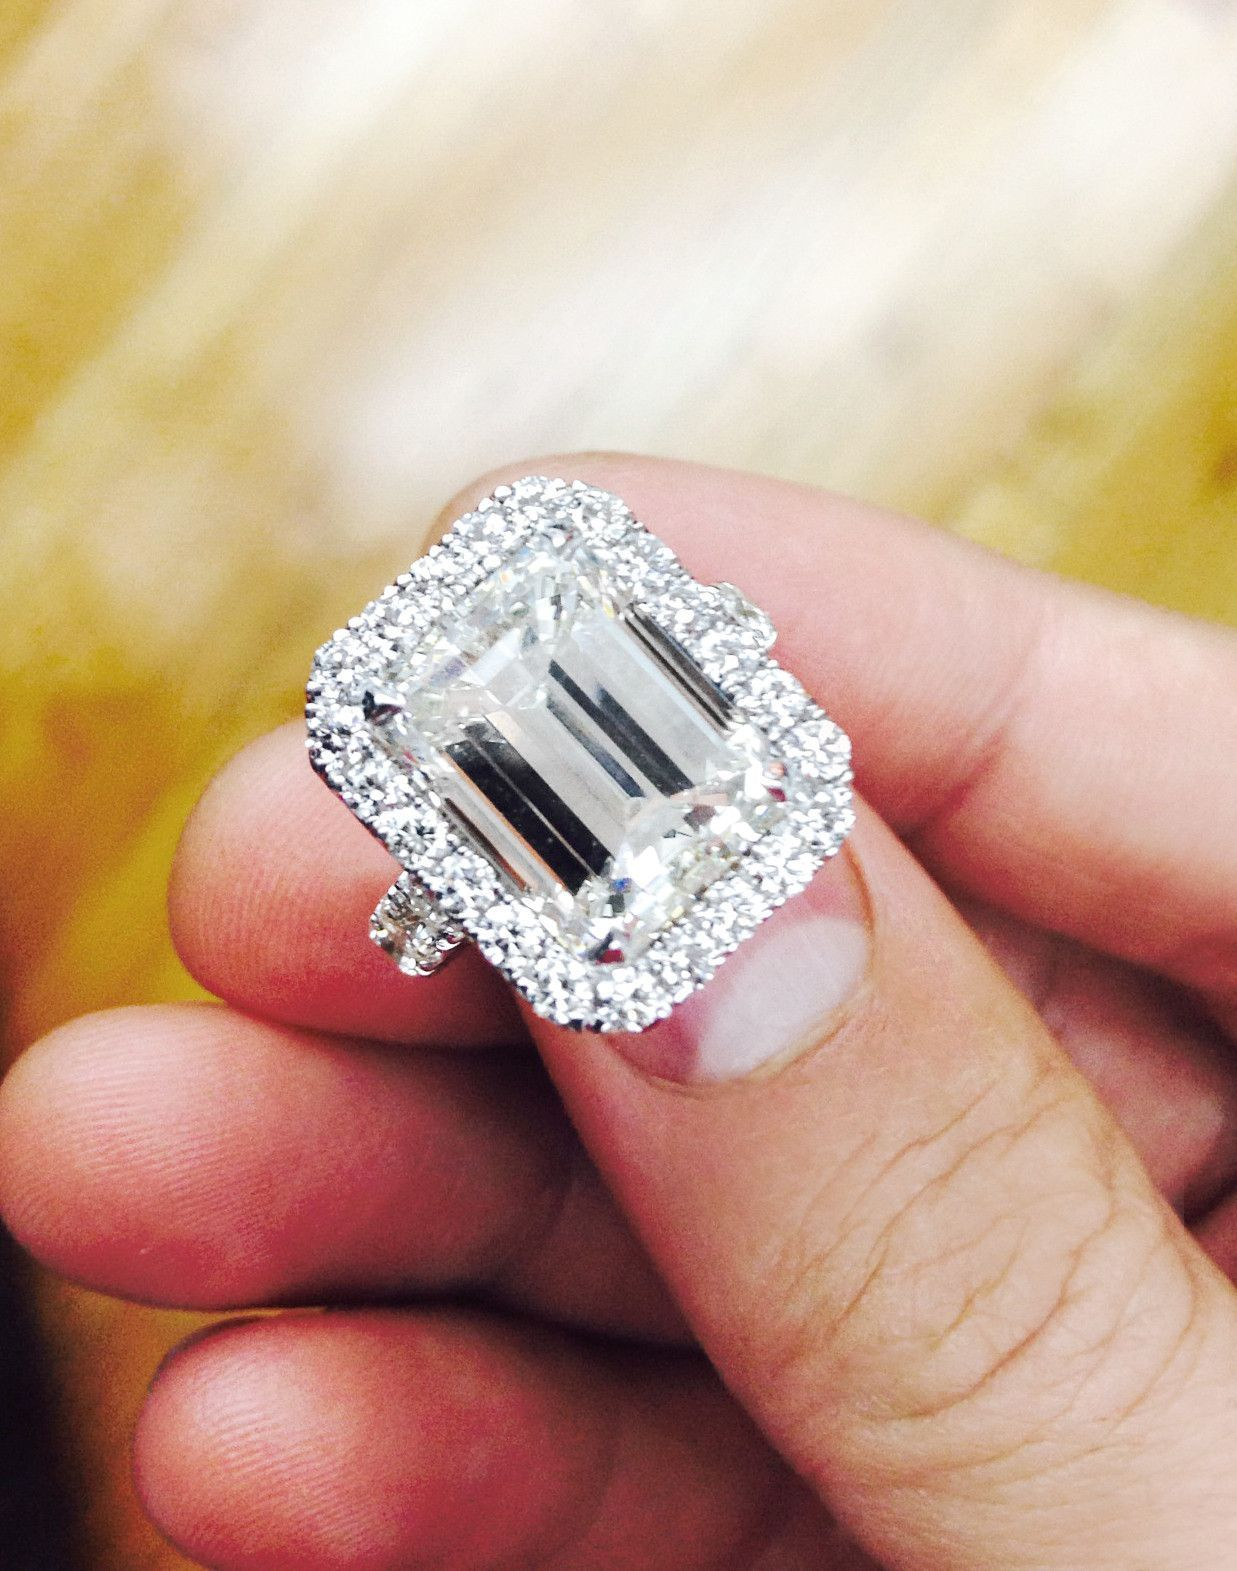 Pin On Diamond Rings I Adore X